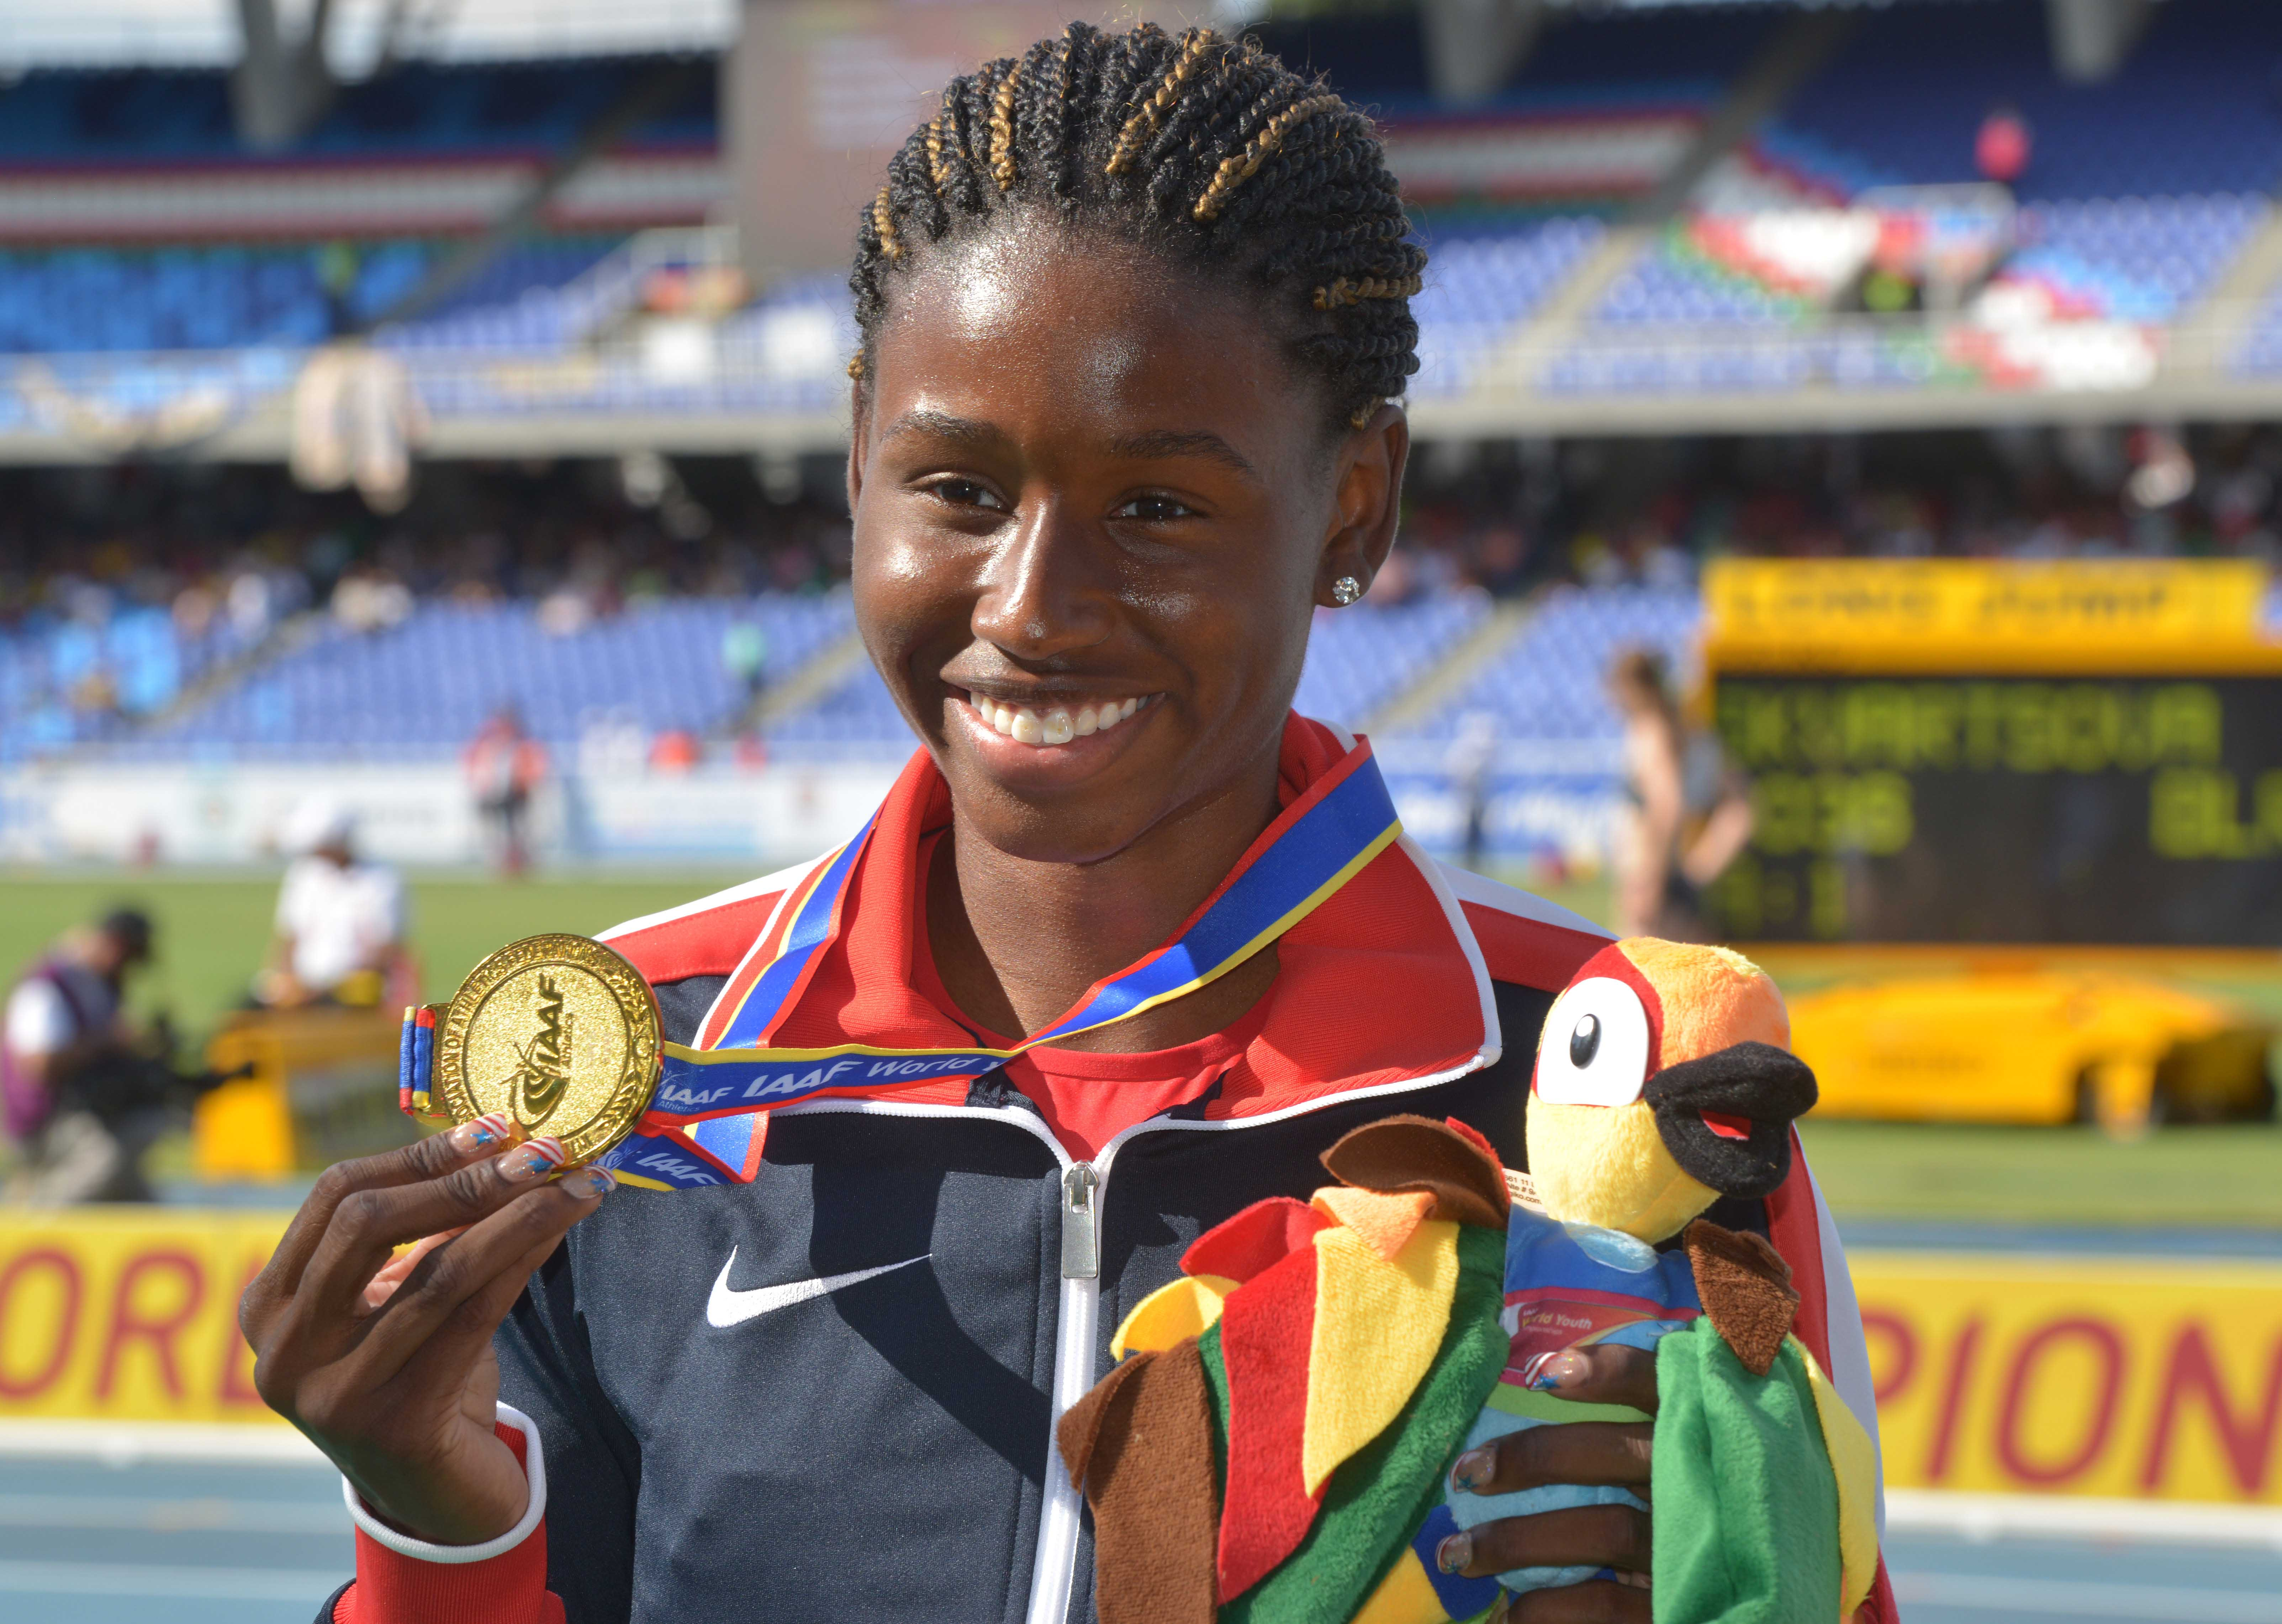 Candace Hill (USA) poses with the gold medal after winning the womens 200m in a world youth record 22.43 during the 2015 IAAF World Youth Championships. (Photo: Kirby Lee, USA TODAY Sports)